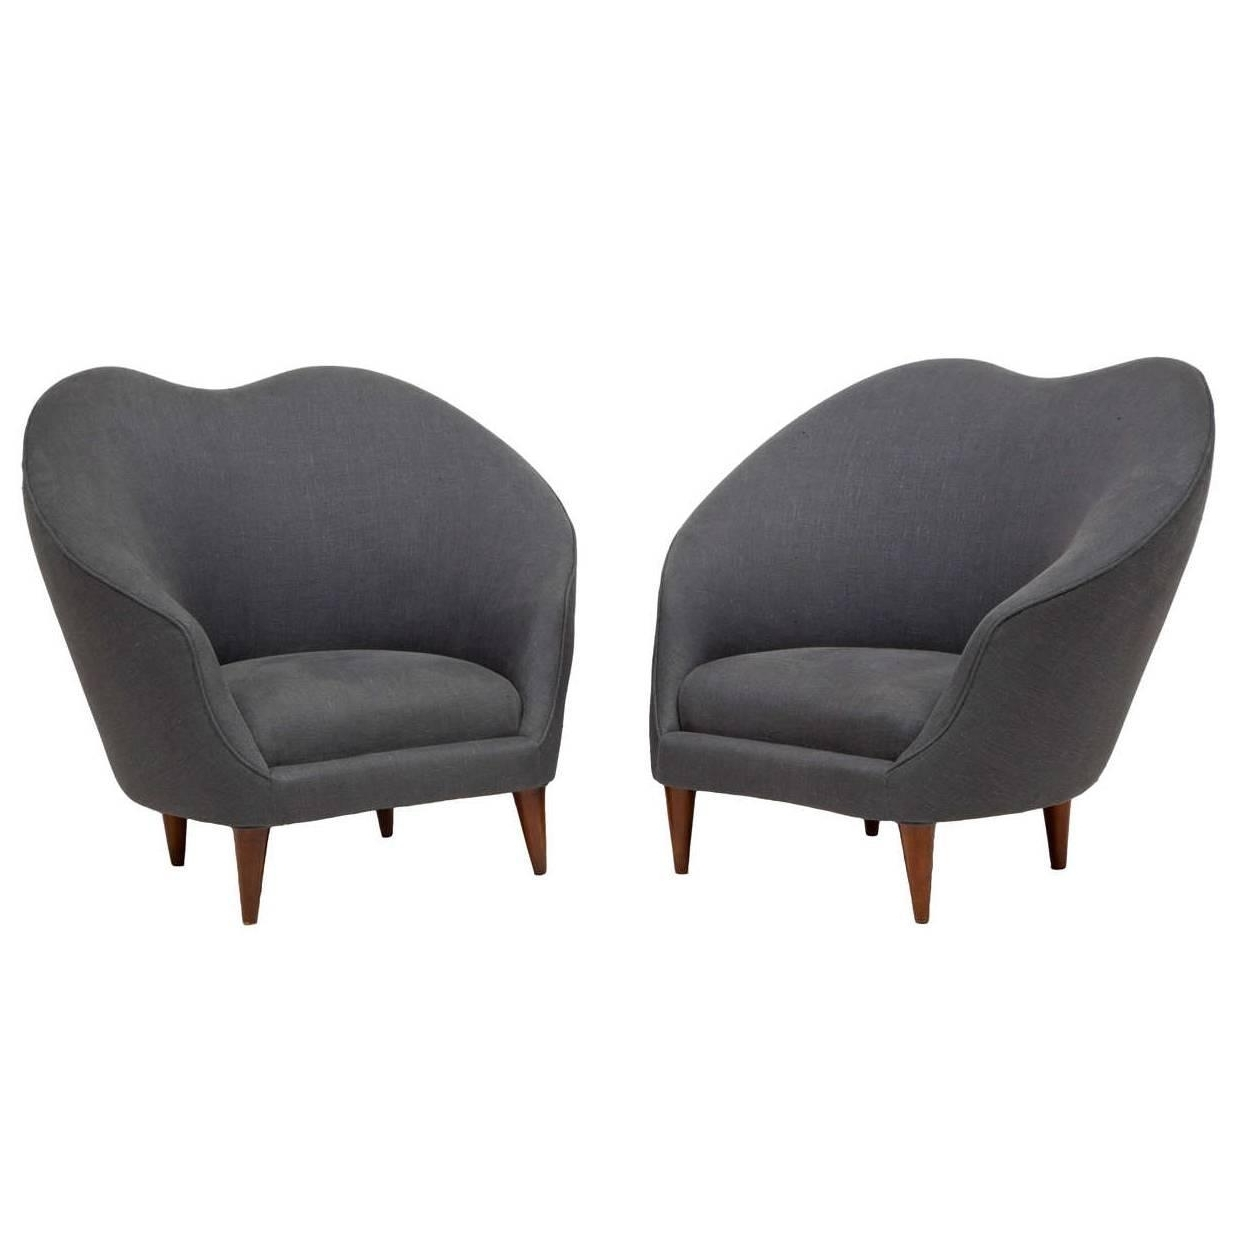 Munari Chairs – Caira Mandaglio For Newest Caira Black Upholstered Arm Chairs (View 14 of 20)